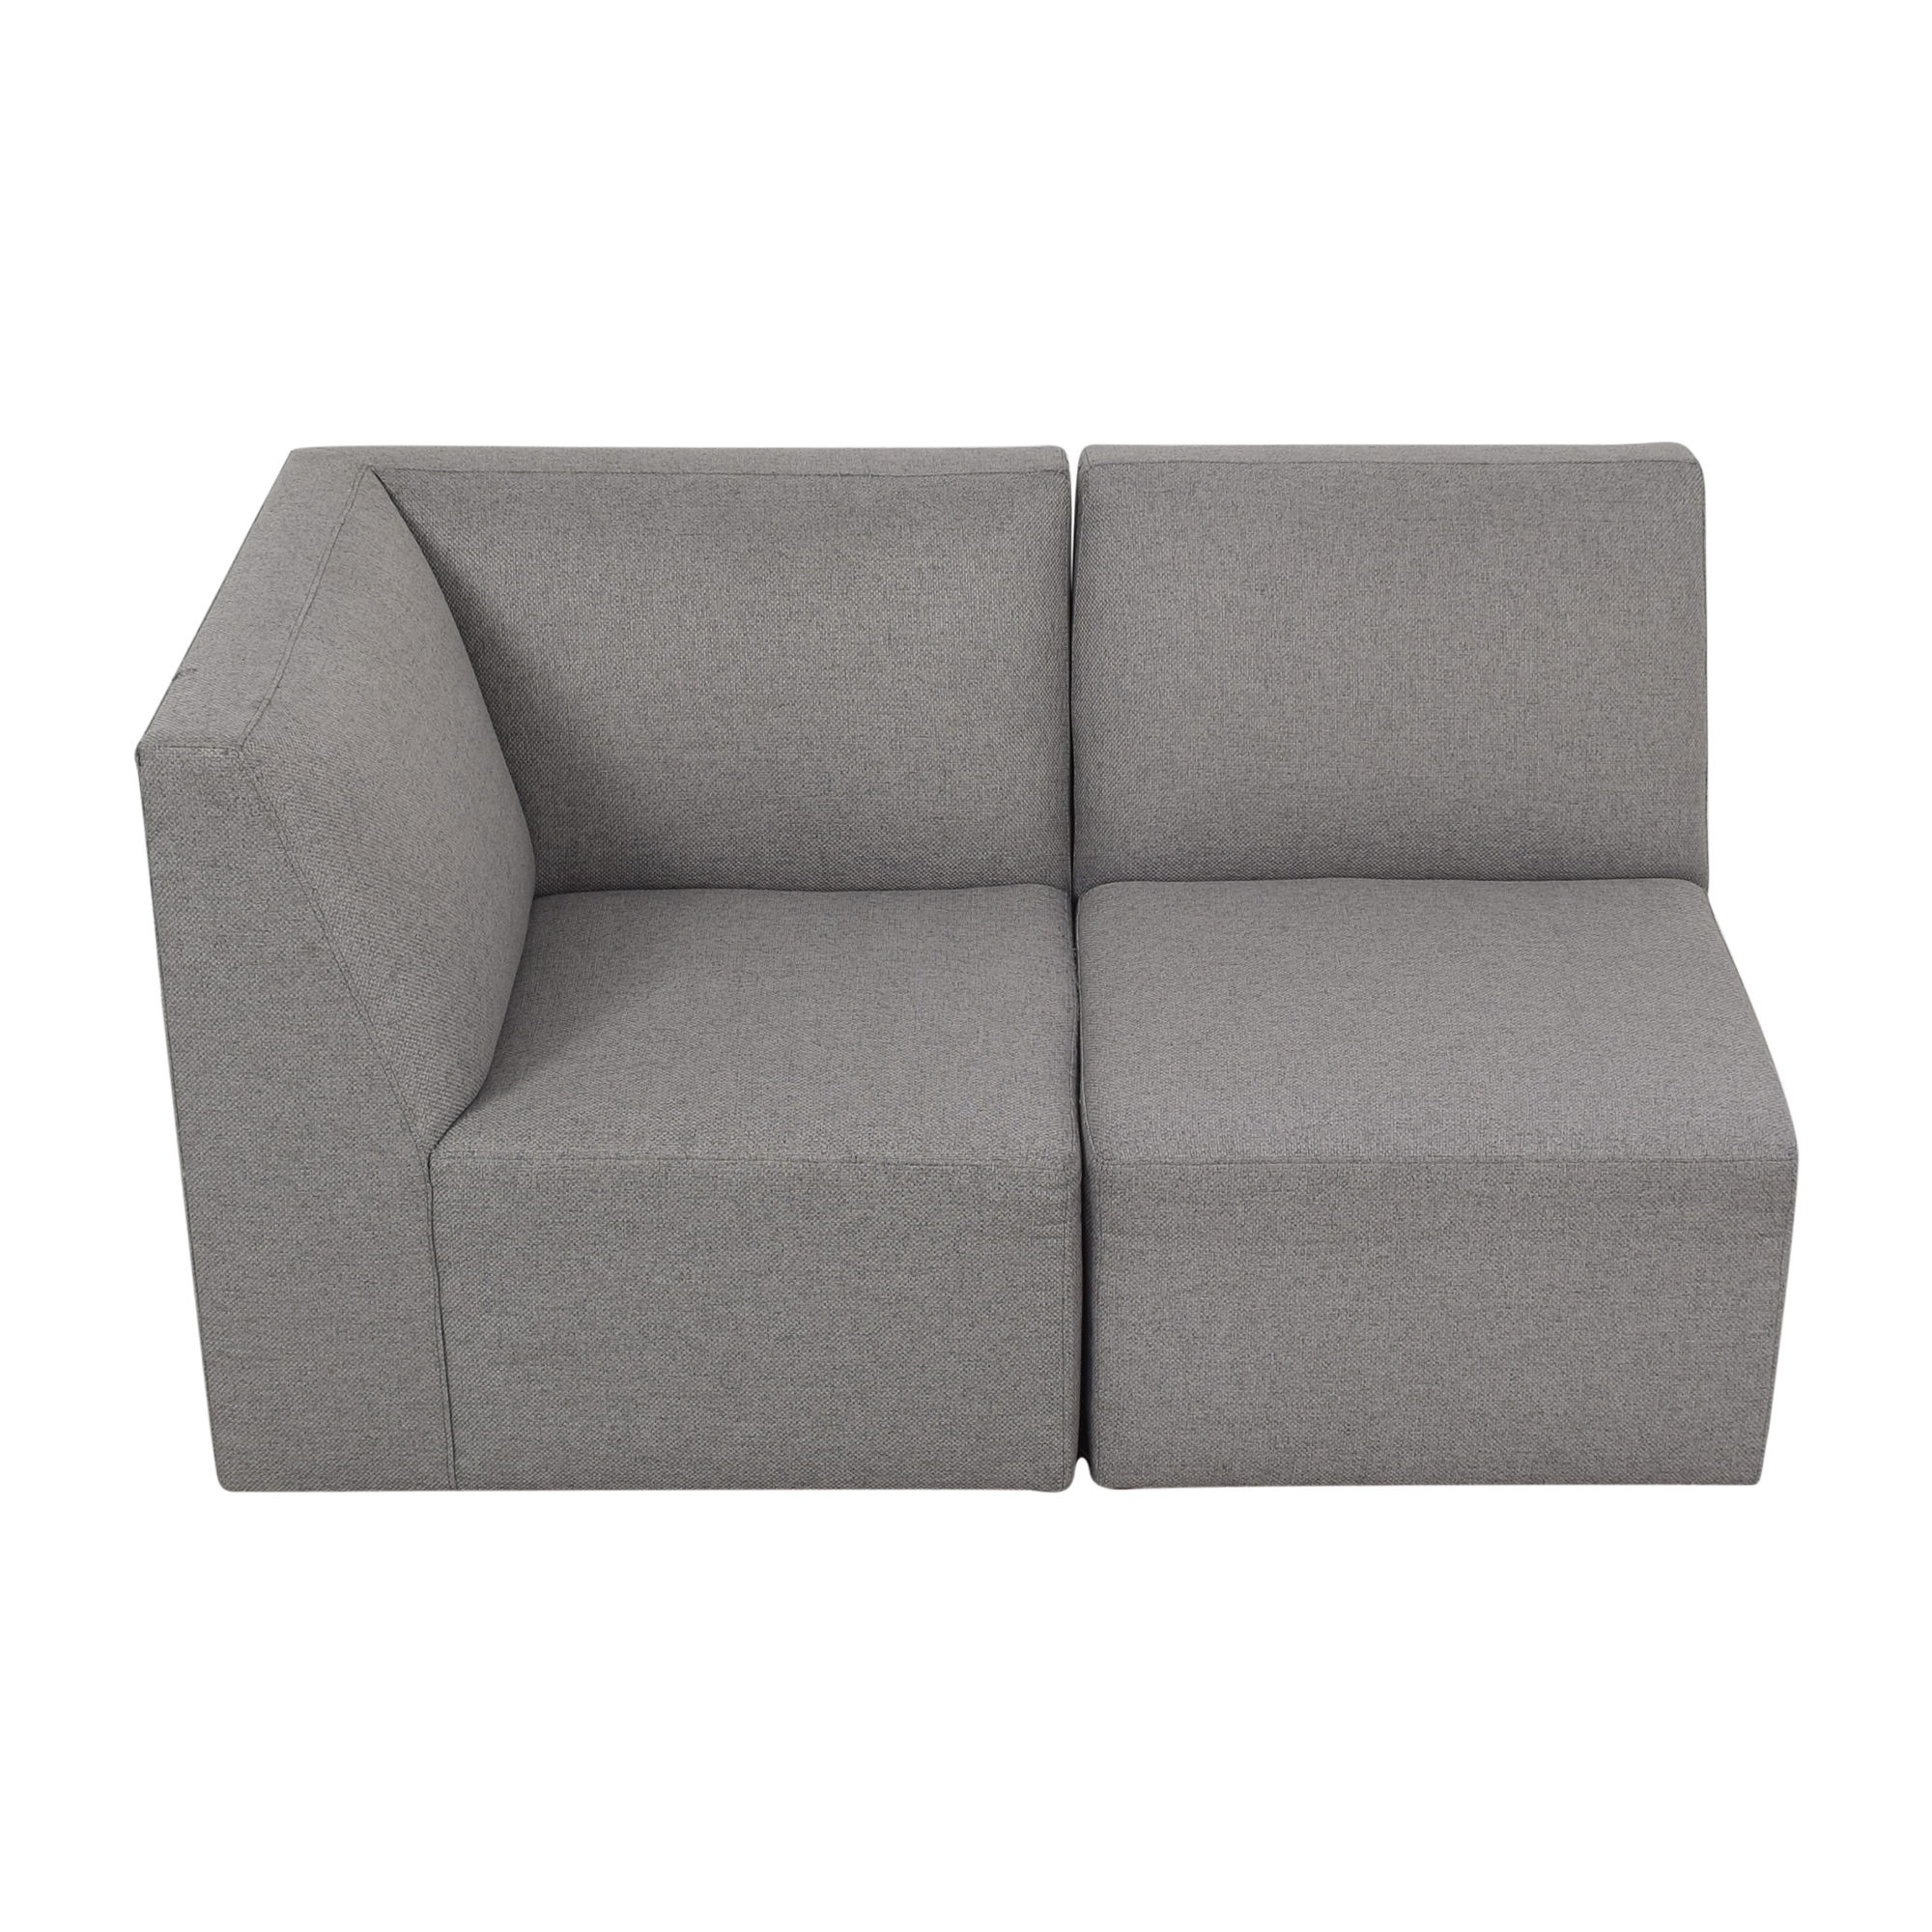 CB2 CB2 Modern Sectional nyc